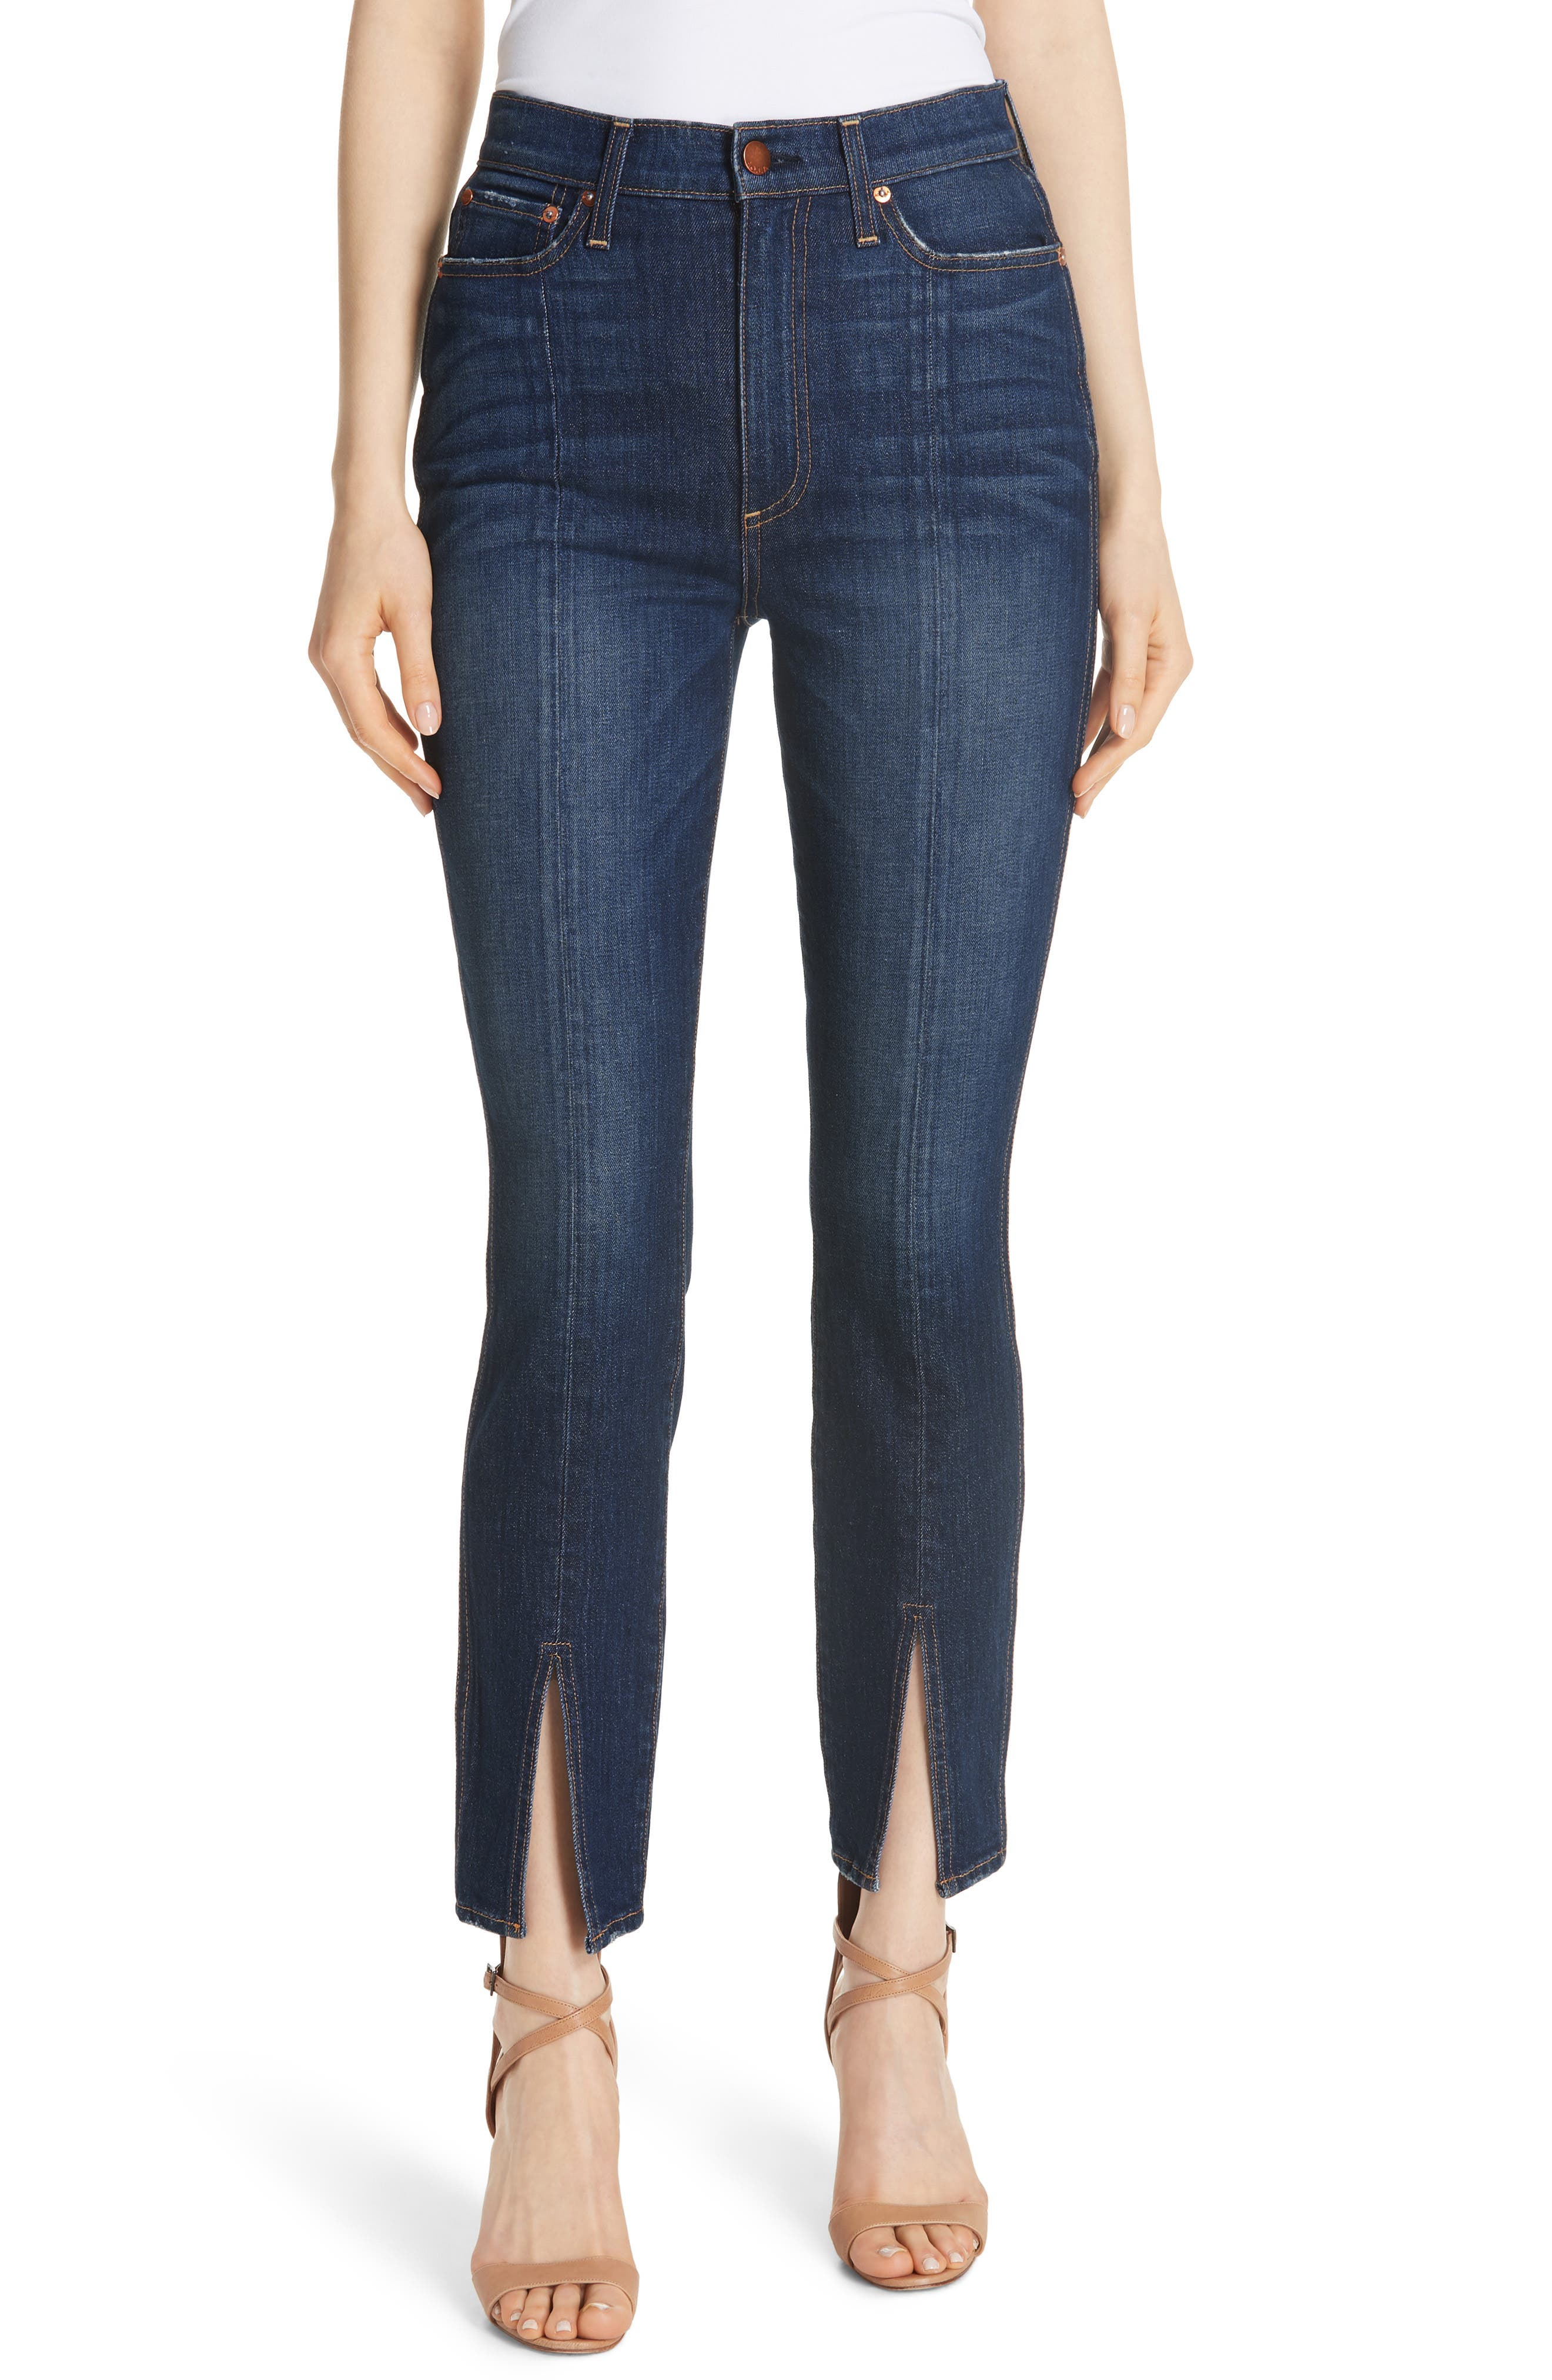 AO.LA Good High Waist Front Slit Skinny Jeans,                             Main thumbnail 1, color,                             GOOD TIMES